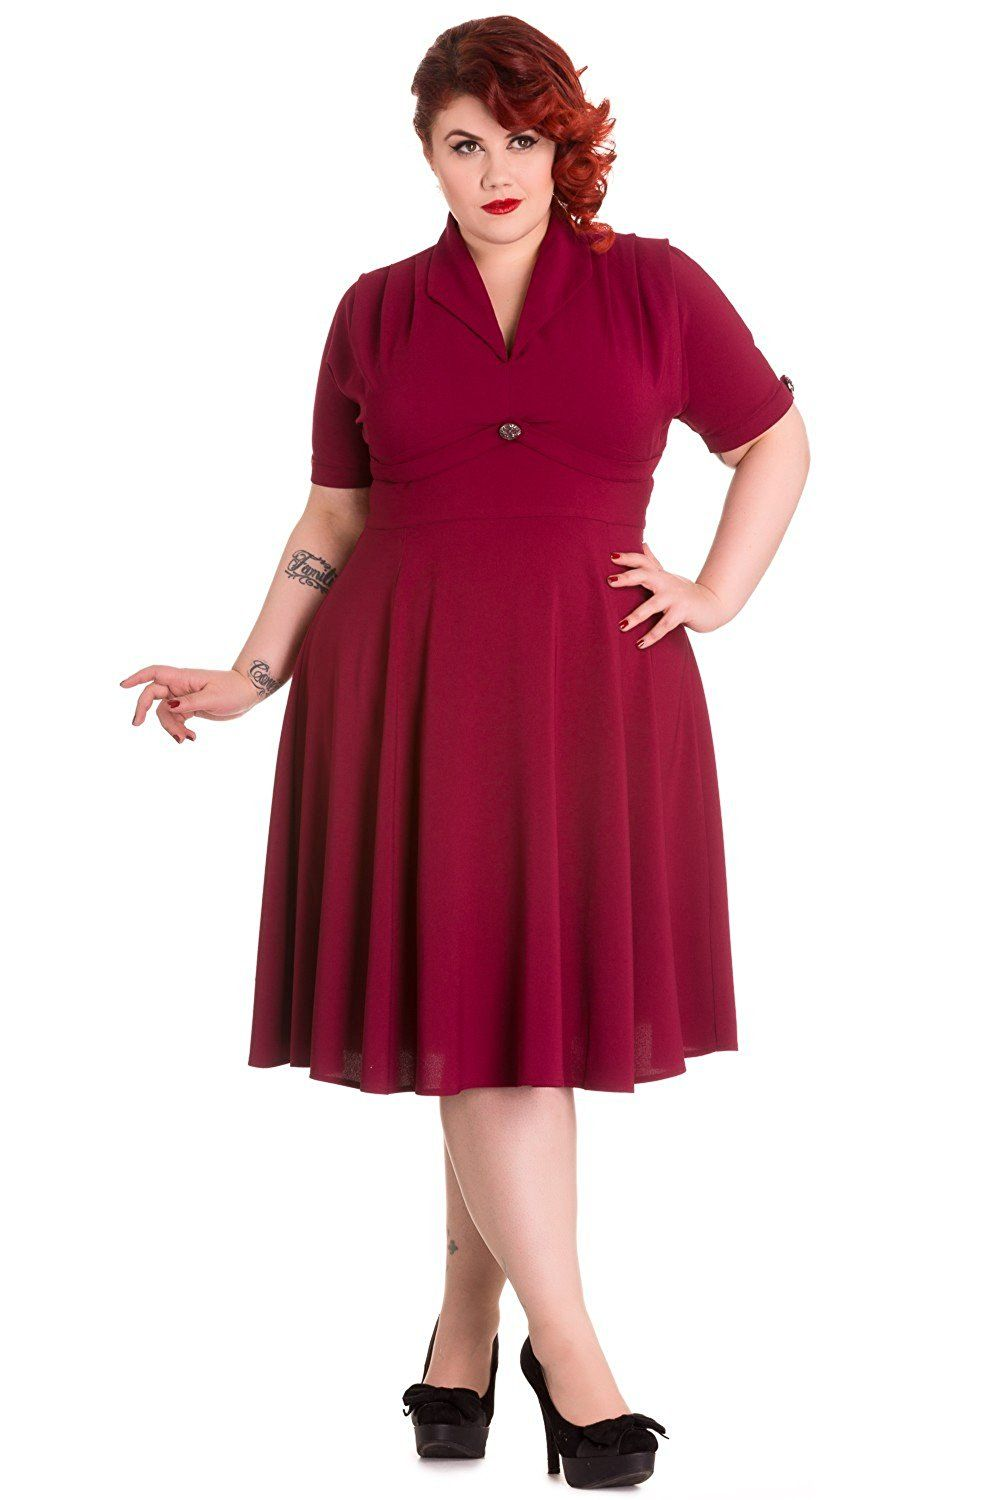 1930s Style Dresses 1930s Style Clothing Plus Size